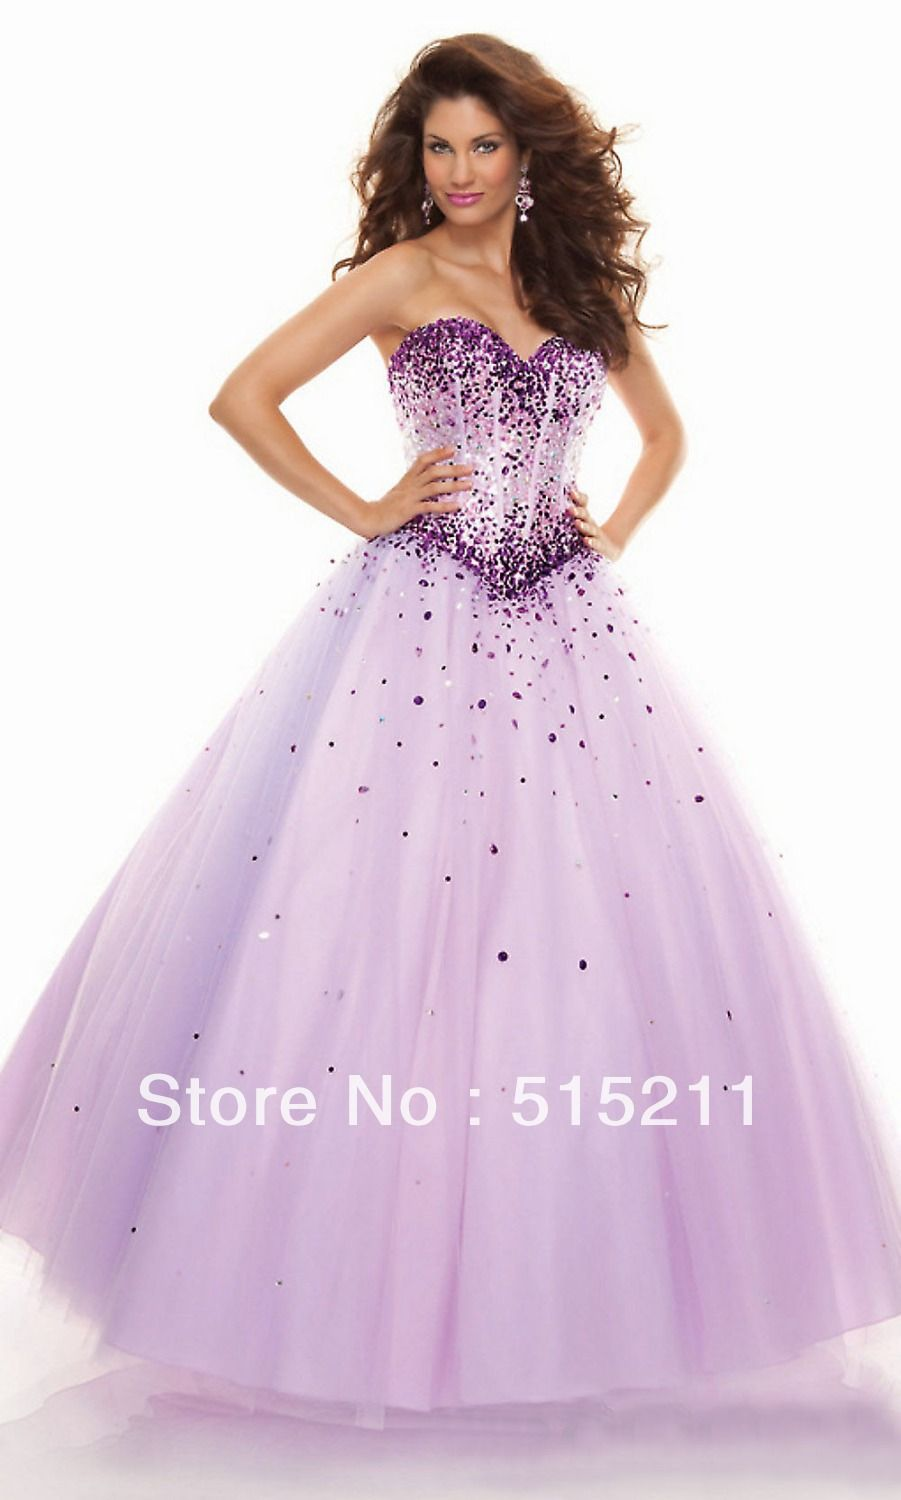 17 Best images about Prom dresses on Pinterest | Puffy prom ...